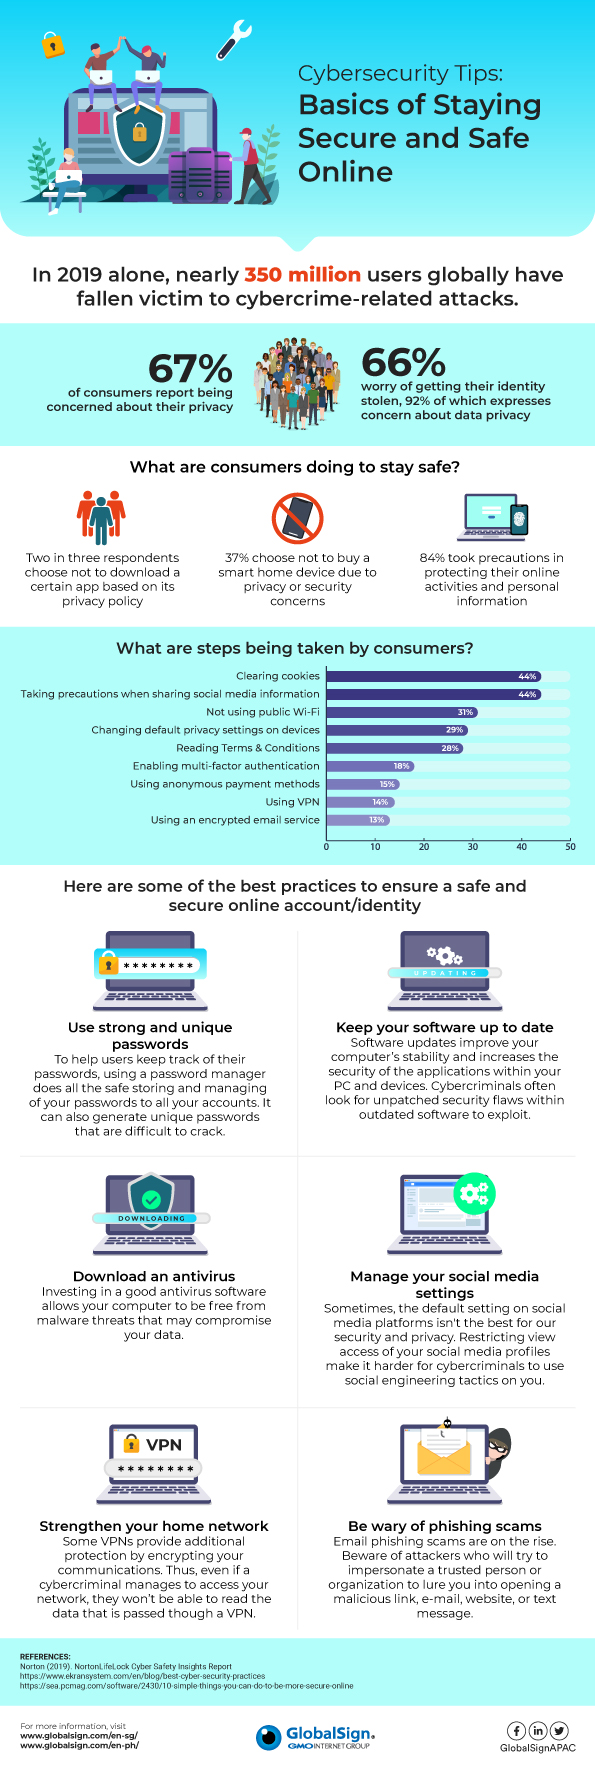 General_Cybersecurity_Tips_Infographic_1_APAC_08_27_2020(1).jpg